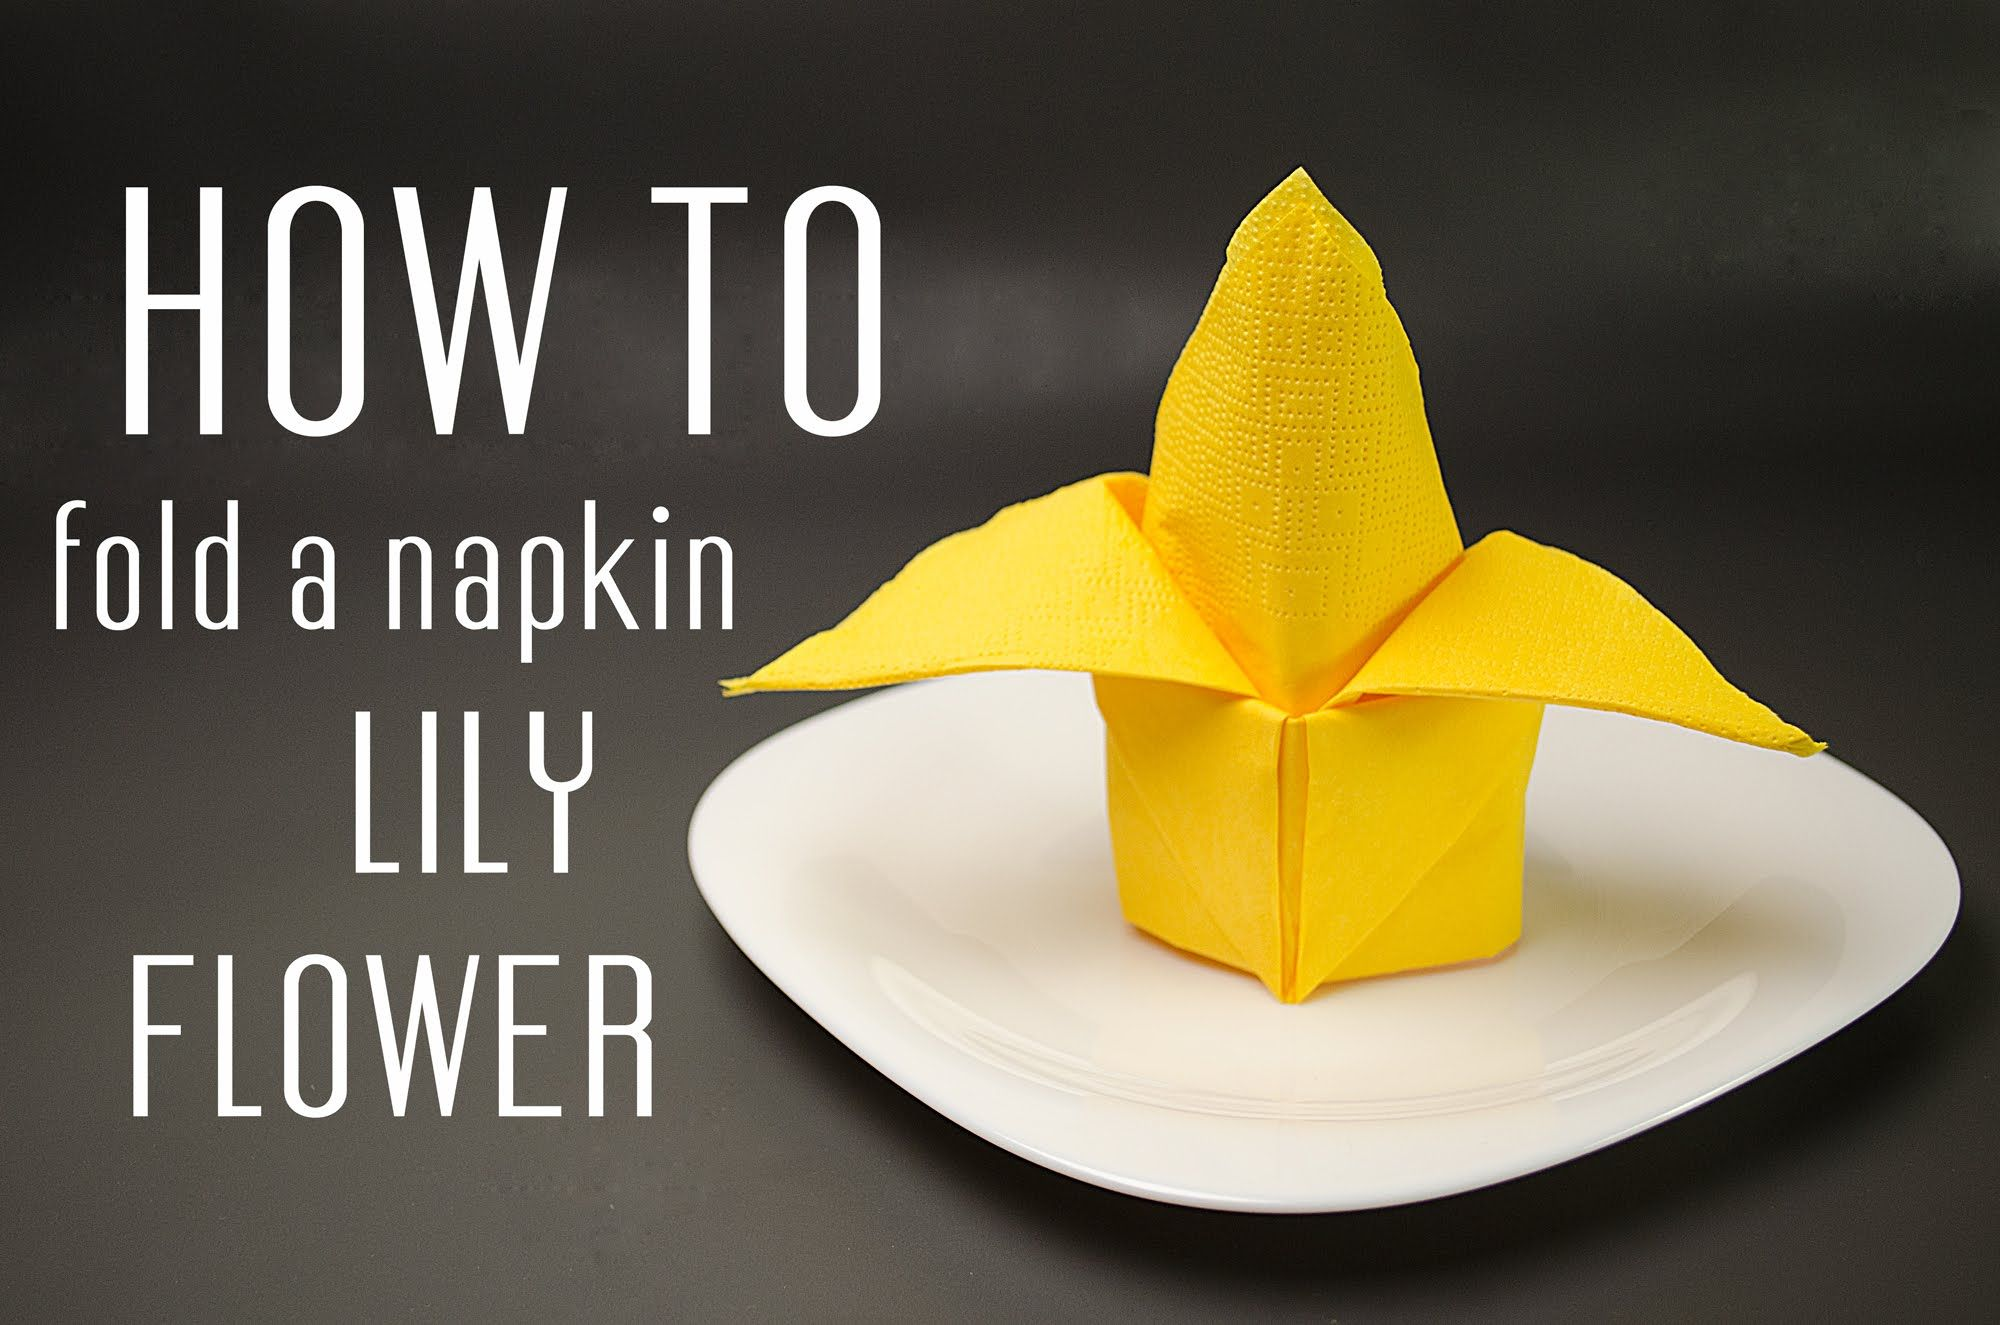 Learn How To Fold A Napkin Into A Lily Flower From A Paper Napkin